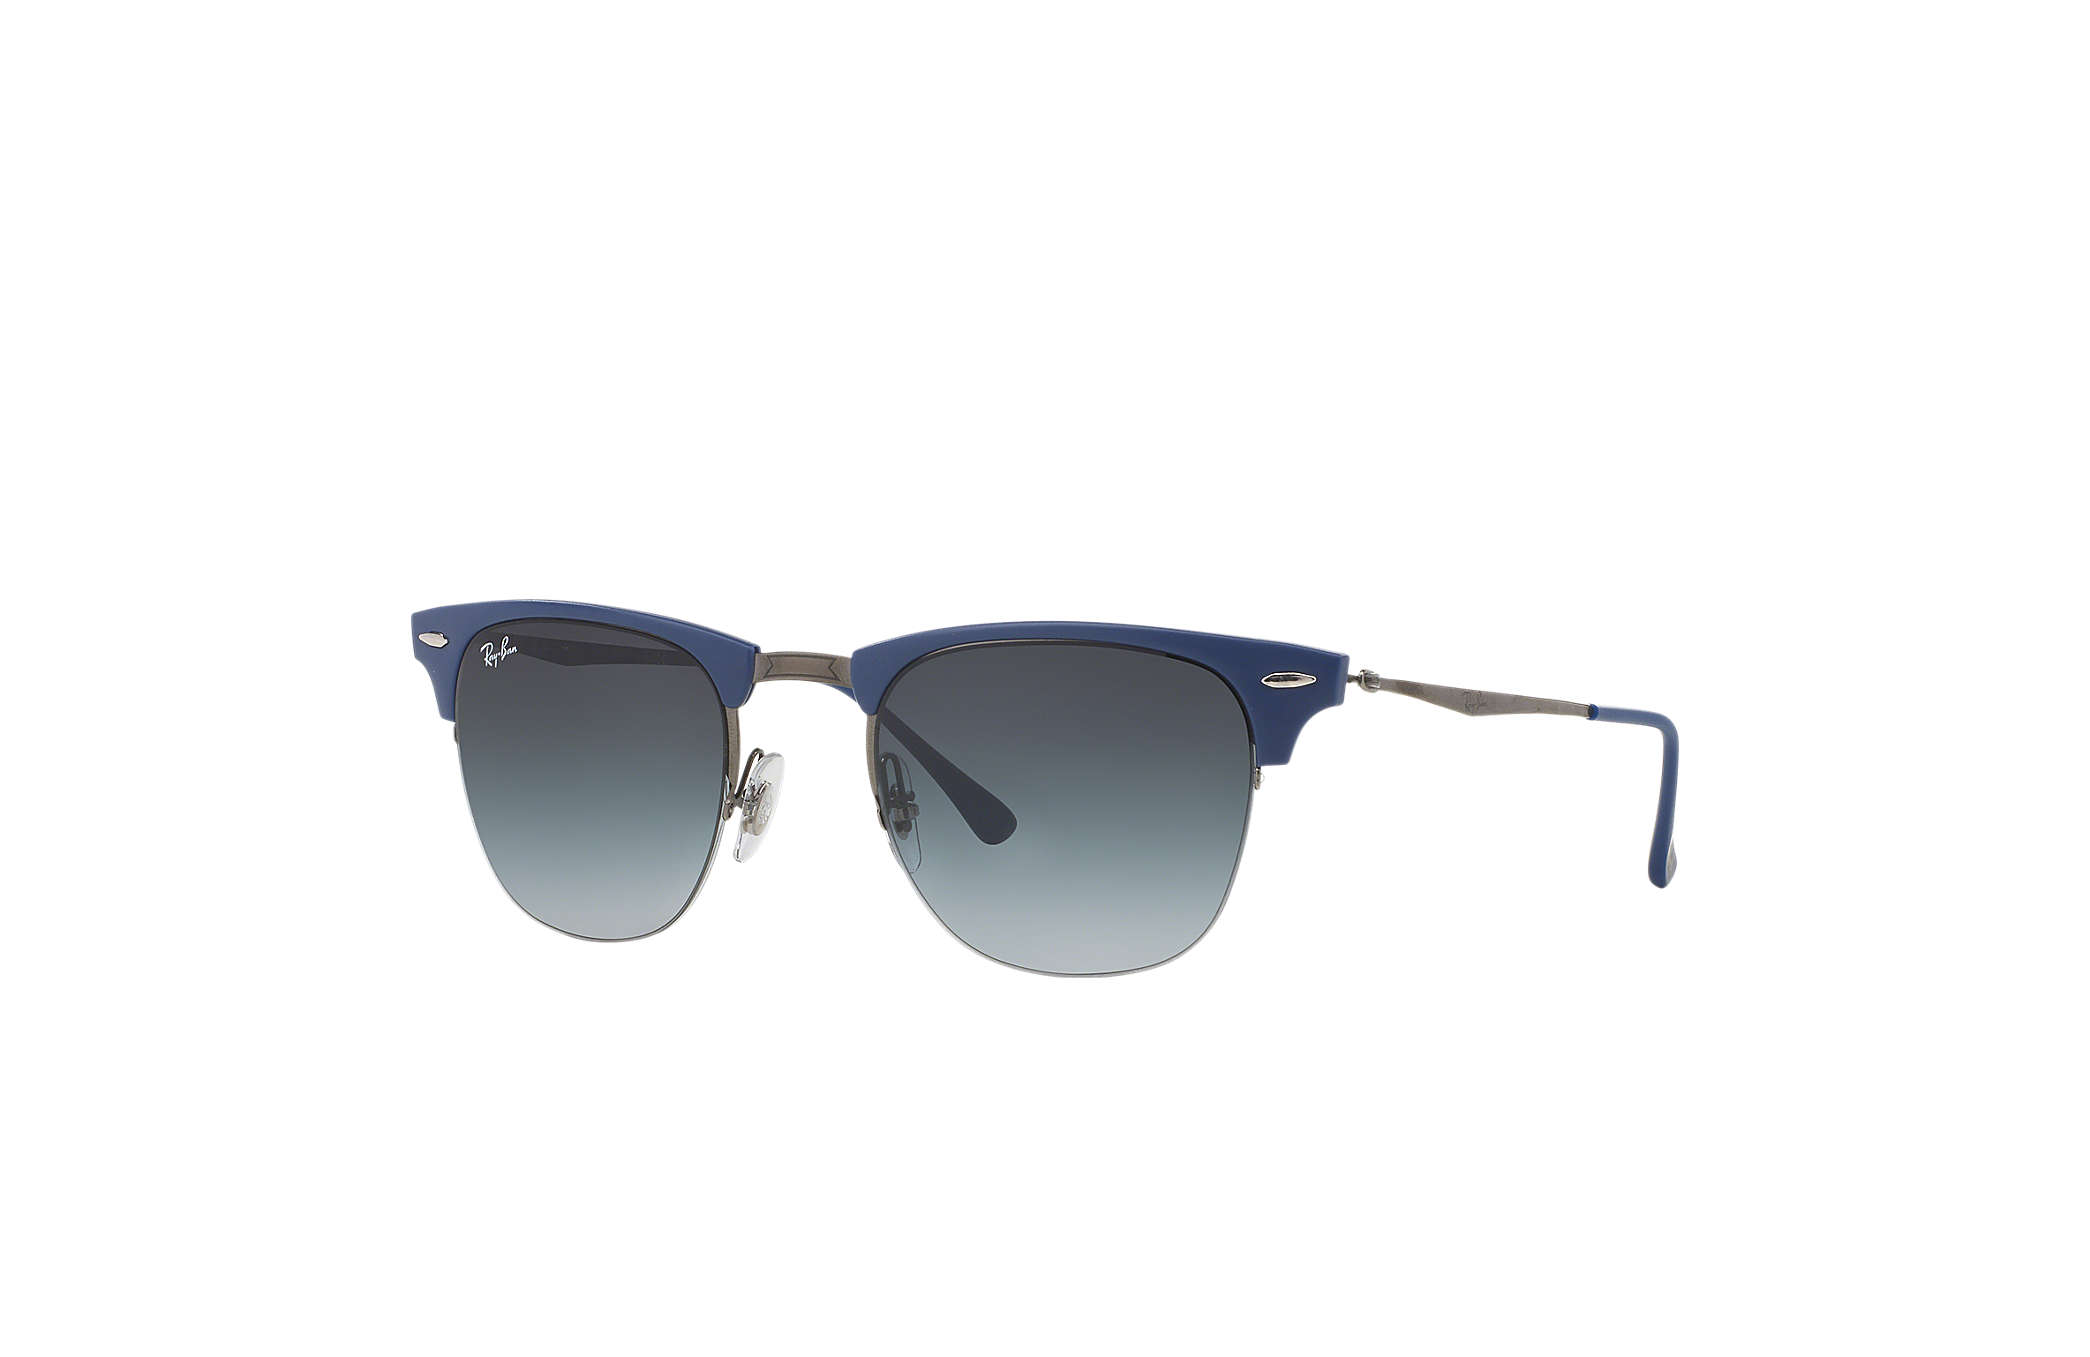 7a72a90e34 ... authentic ray ban 0rb8056 clubmaster light ray blue gunmetal sun 2c810  1d948